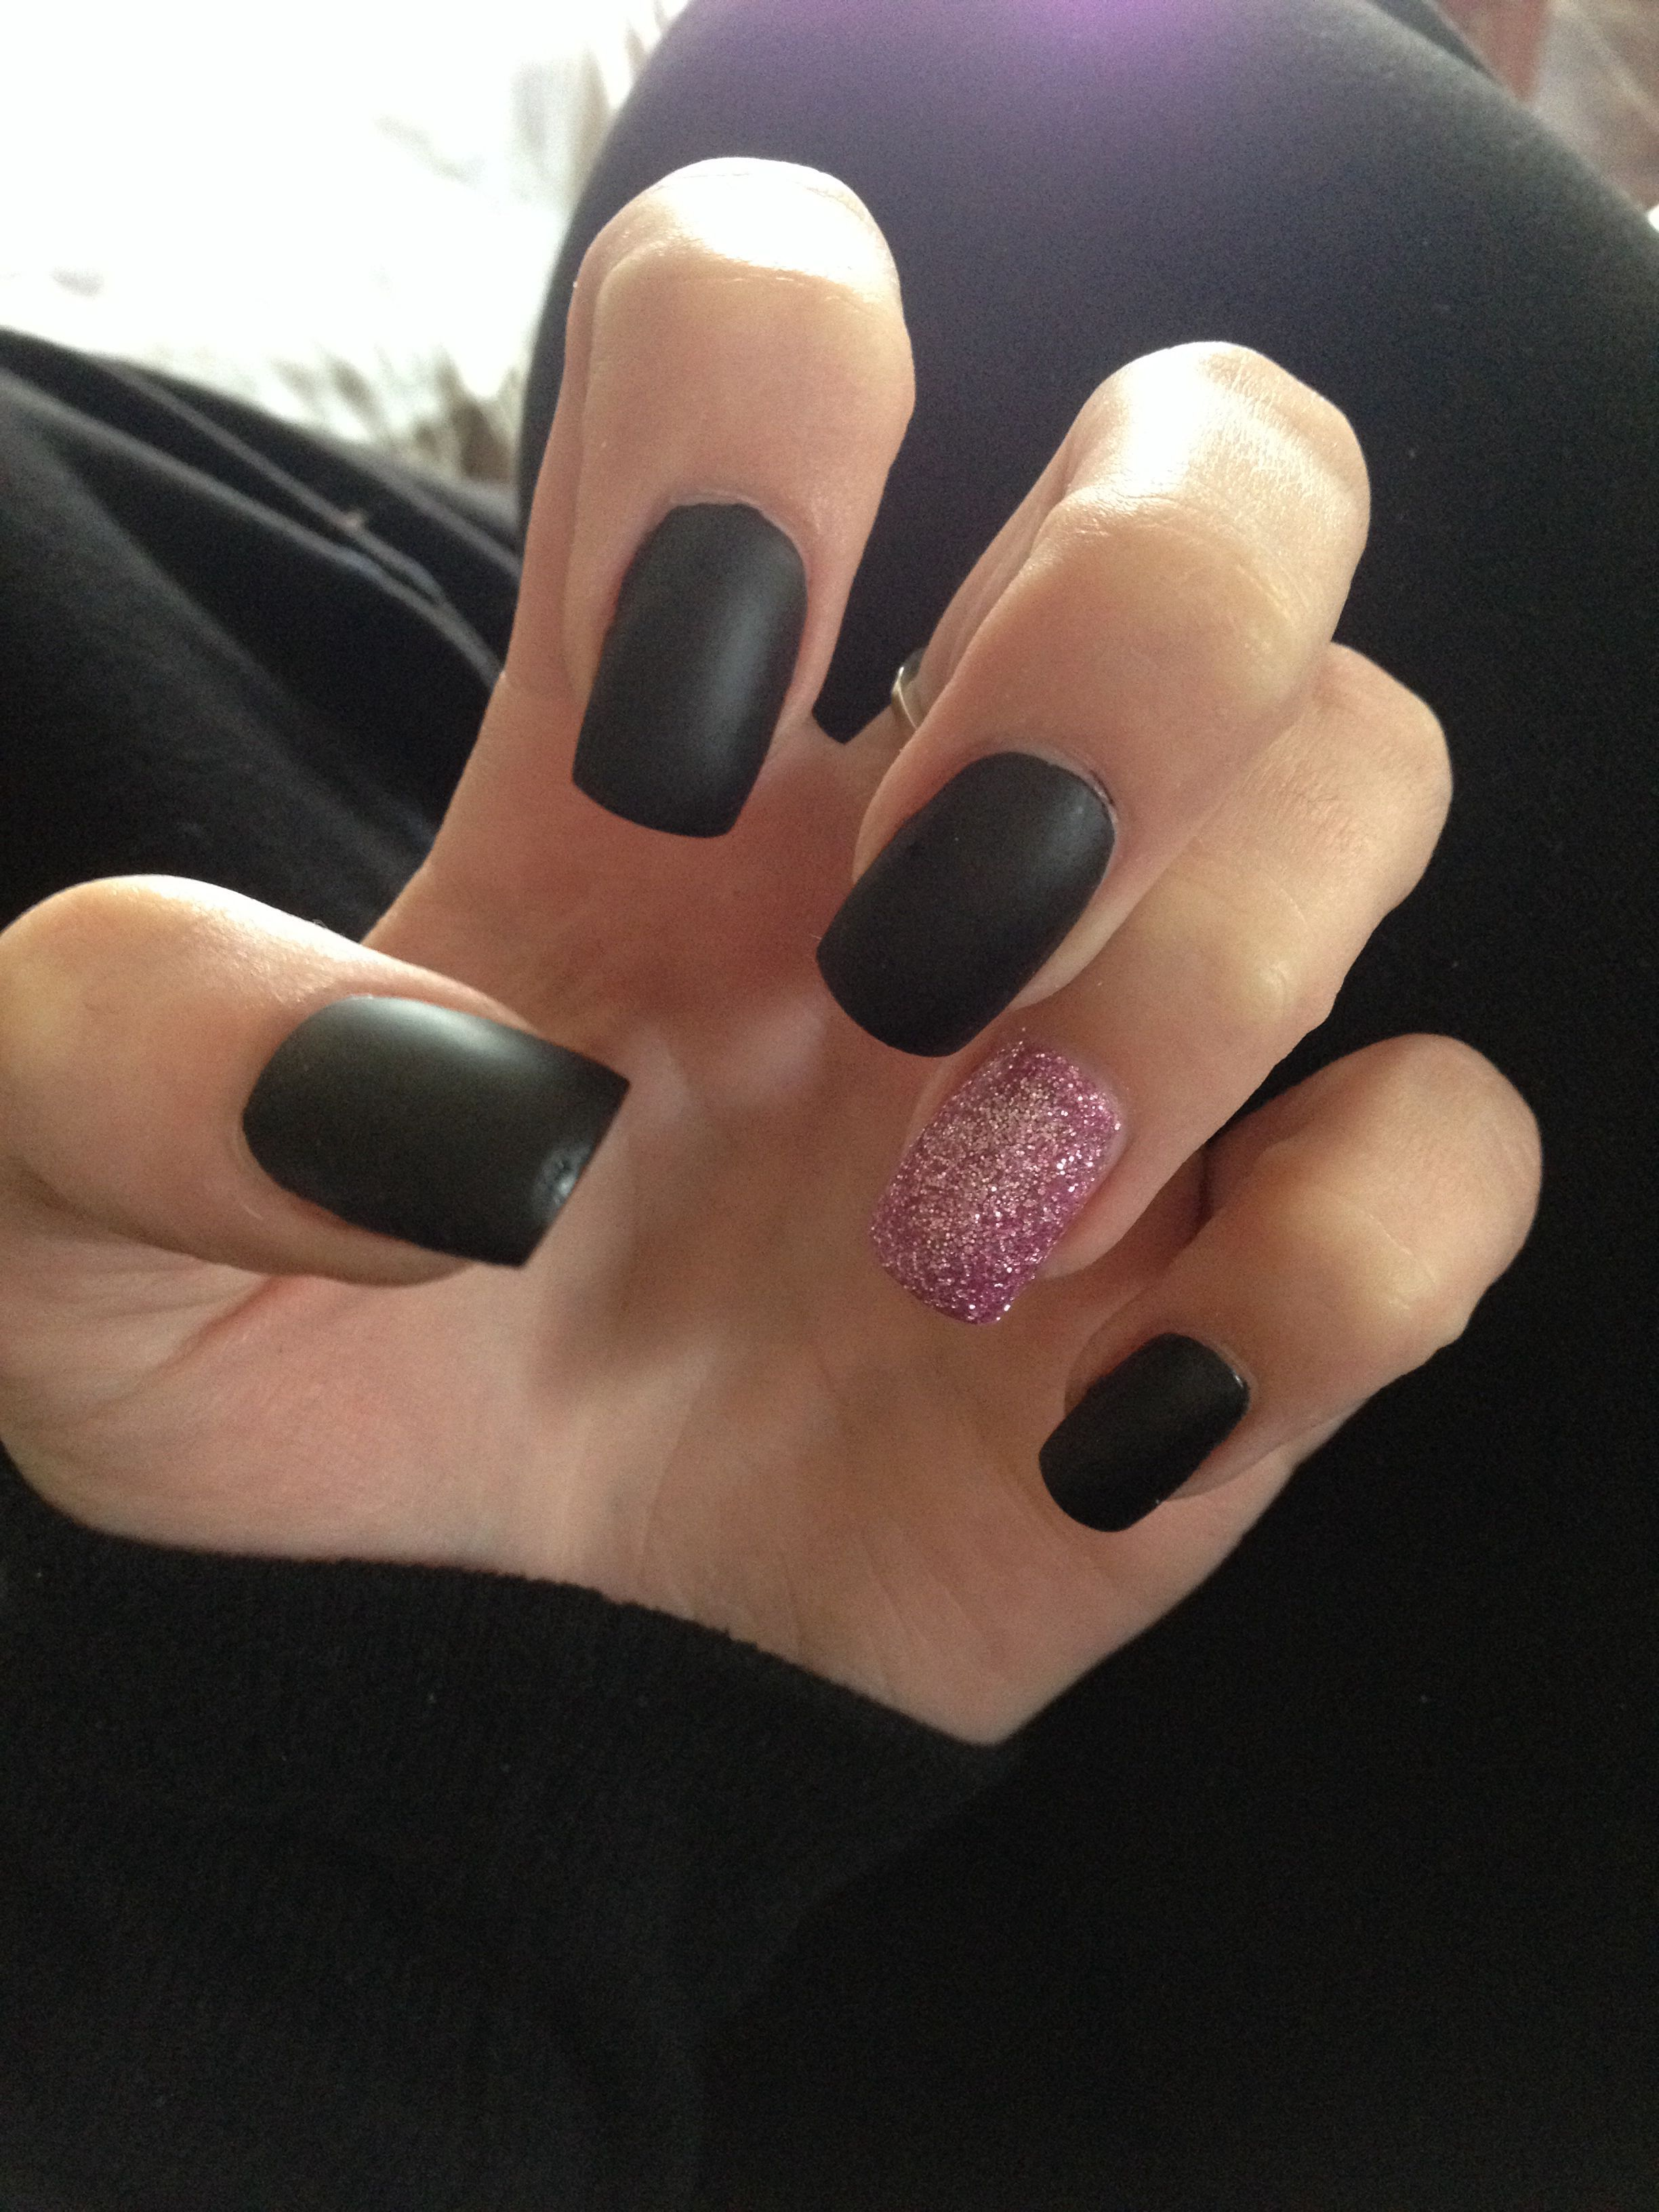 Matte Black Nails With Pink Glitter Pink Glitter Nails Black Nails With Glitter Matte Pink Nails